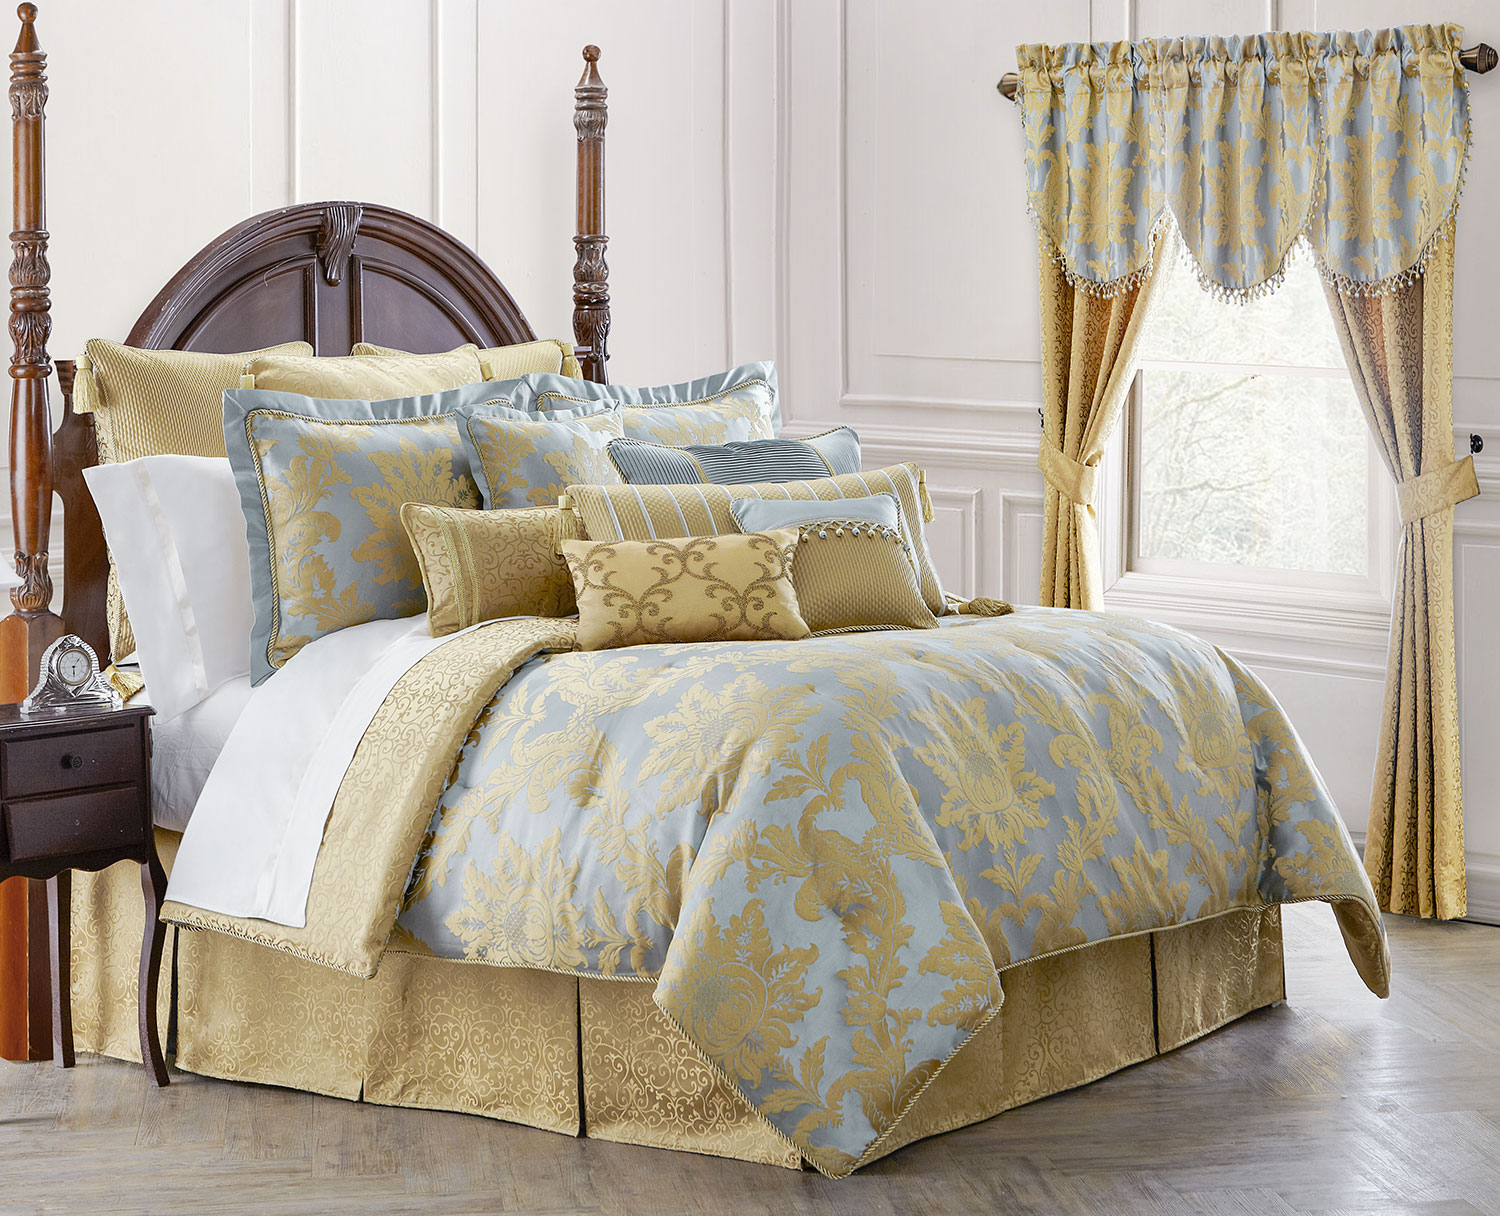 Juliette By Waterford Luxury Bedding Beddingsuperstore Com